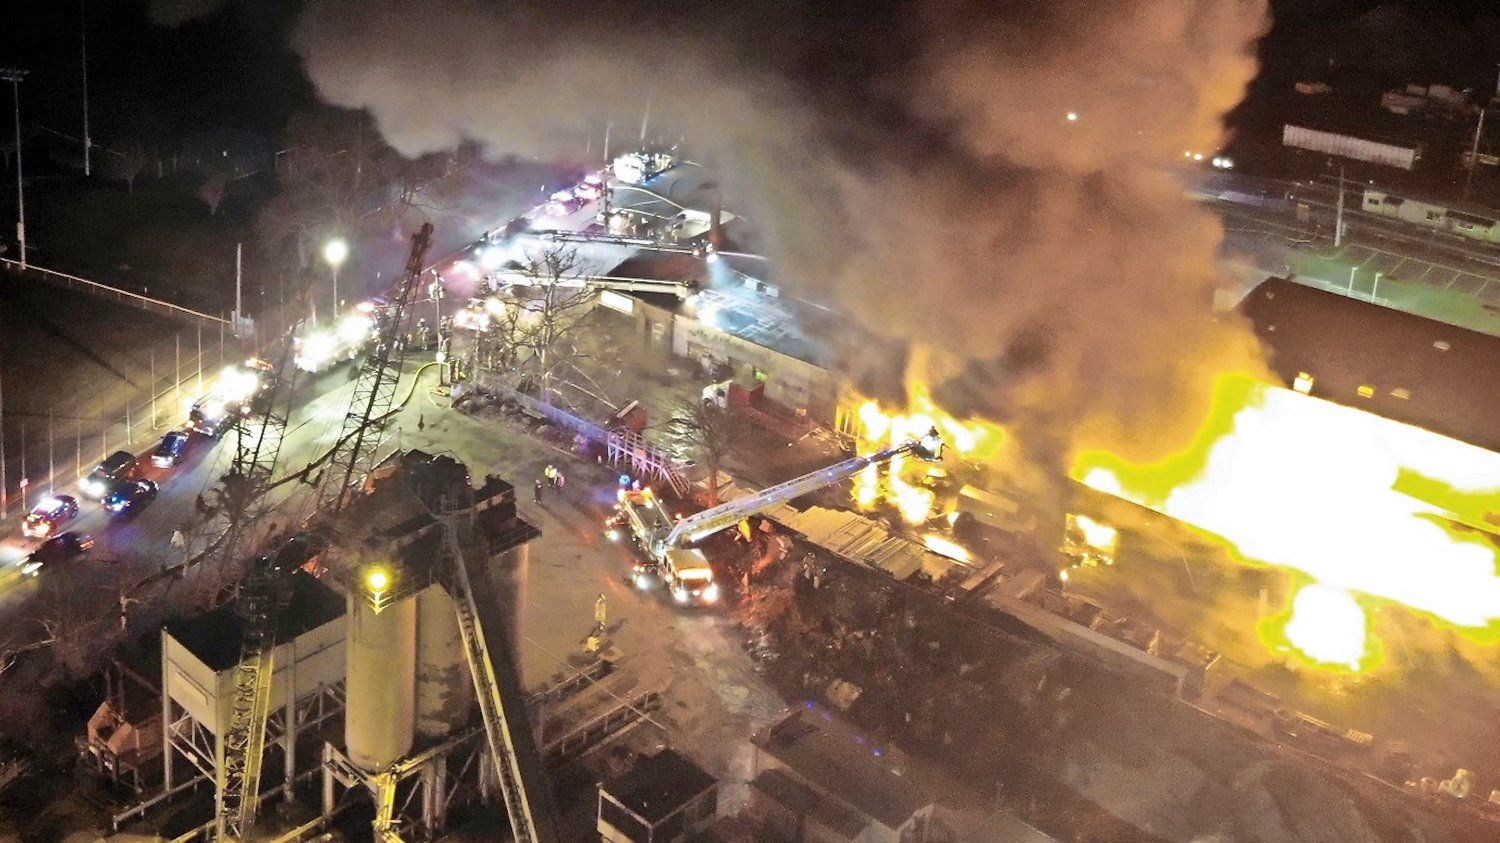 Drone footage revealed the intensity of the blaze.